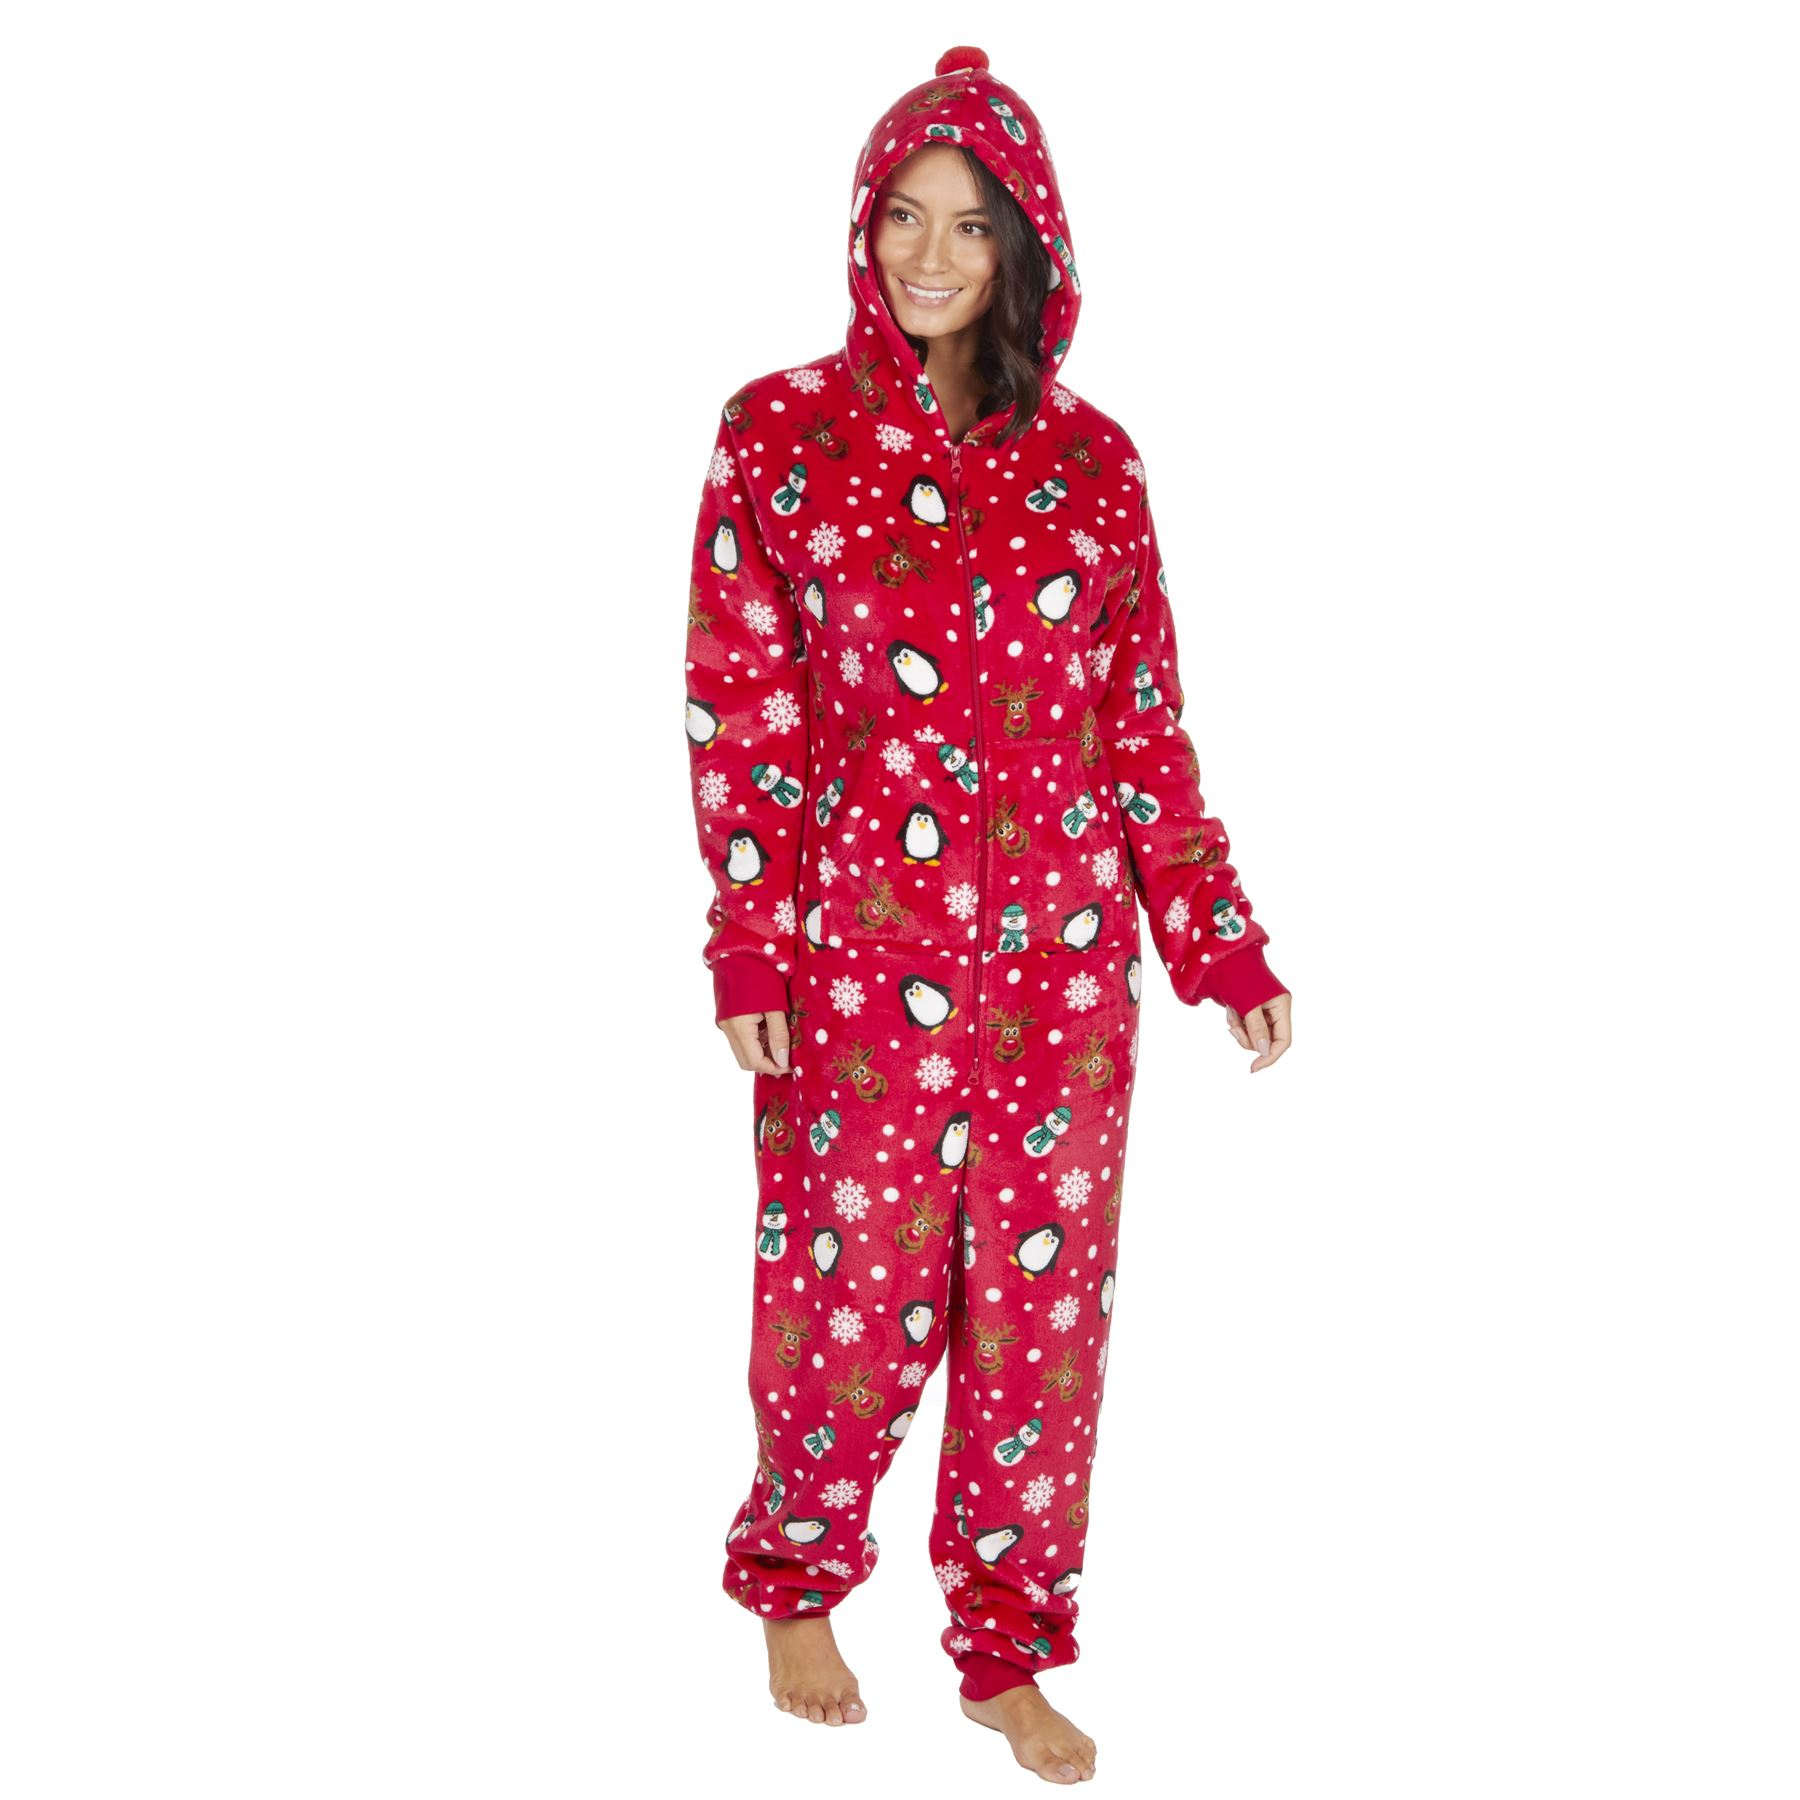 Ladies-Womens-Girls-Fleece-All-In-One-Pyjamas-Outfit-Jumpsuit-Costume-Size-6-18 thumbnail 58